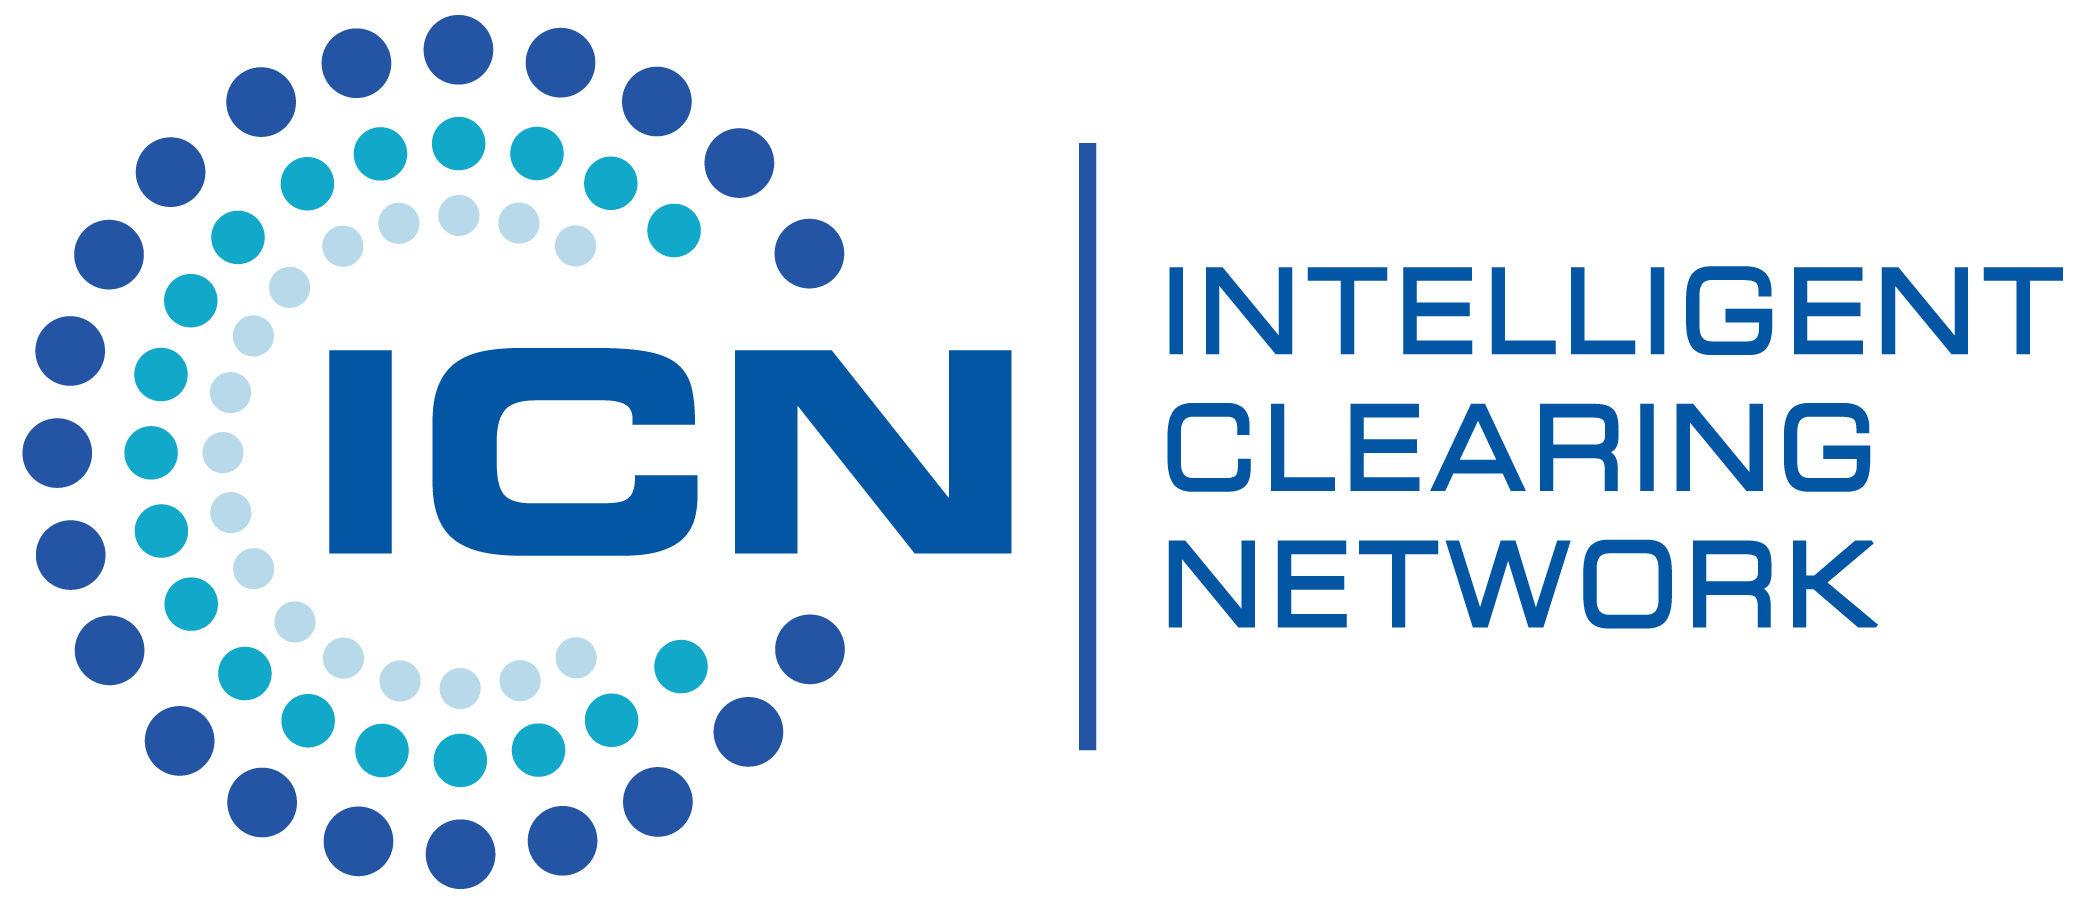 Intelligent Clearing Network, Inc